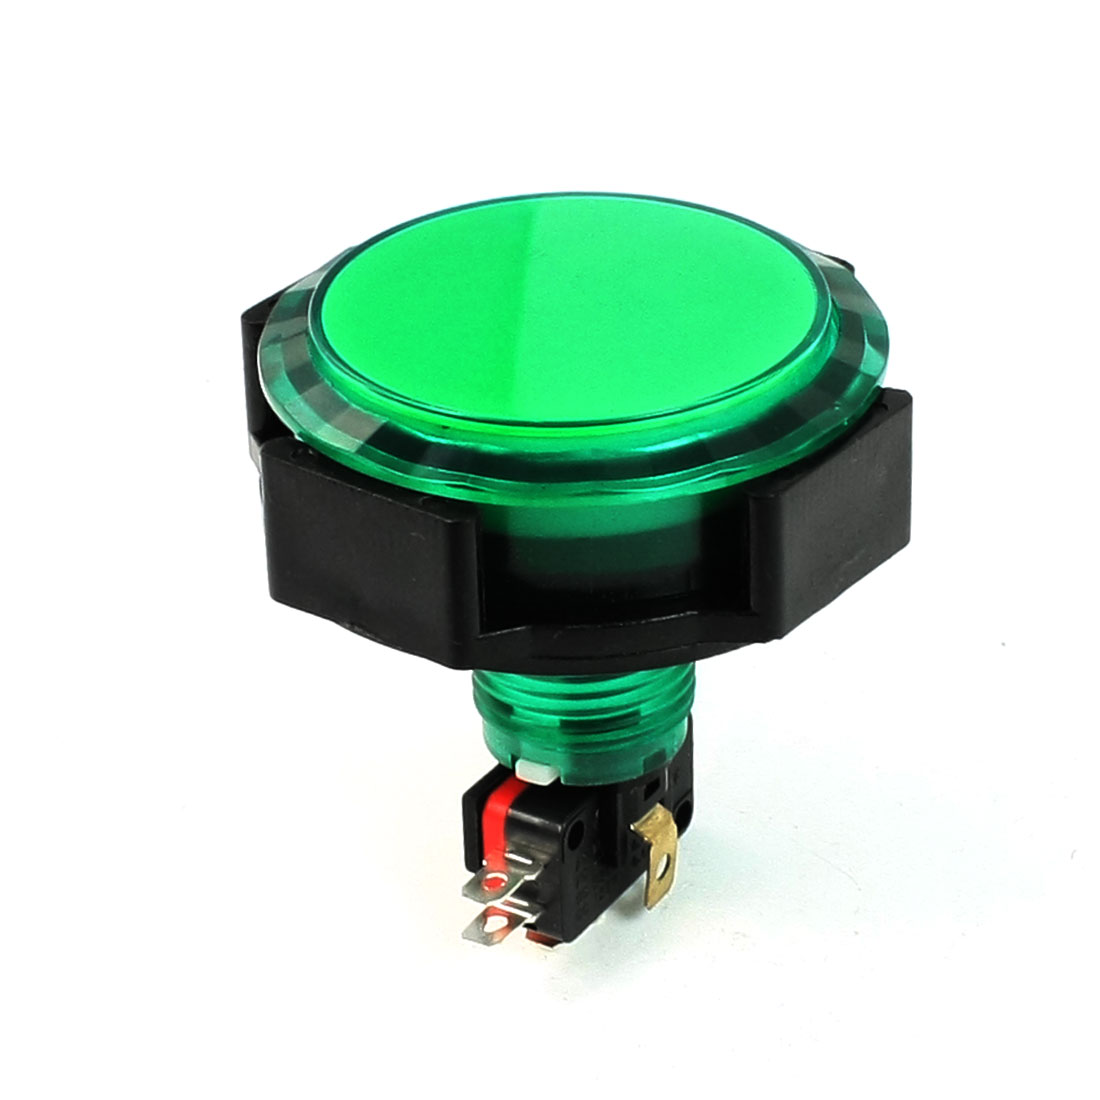 AC 125V/250V 15A 24mm Diameter Thread Momentary Push Button Switch Green